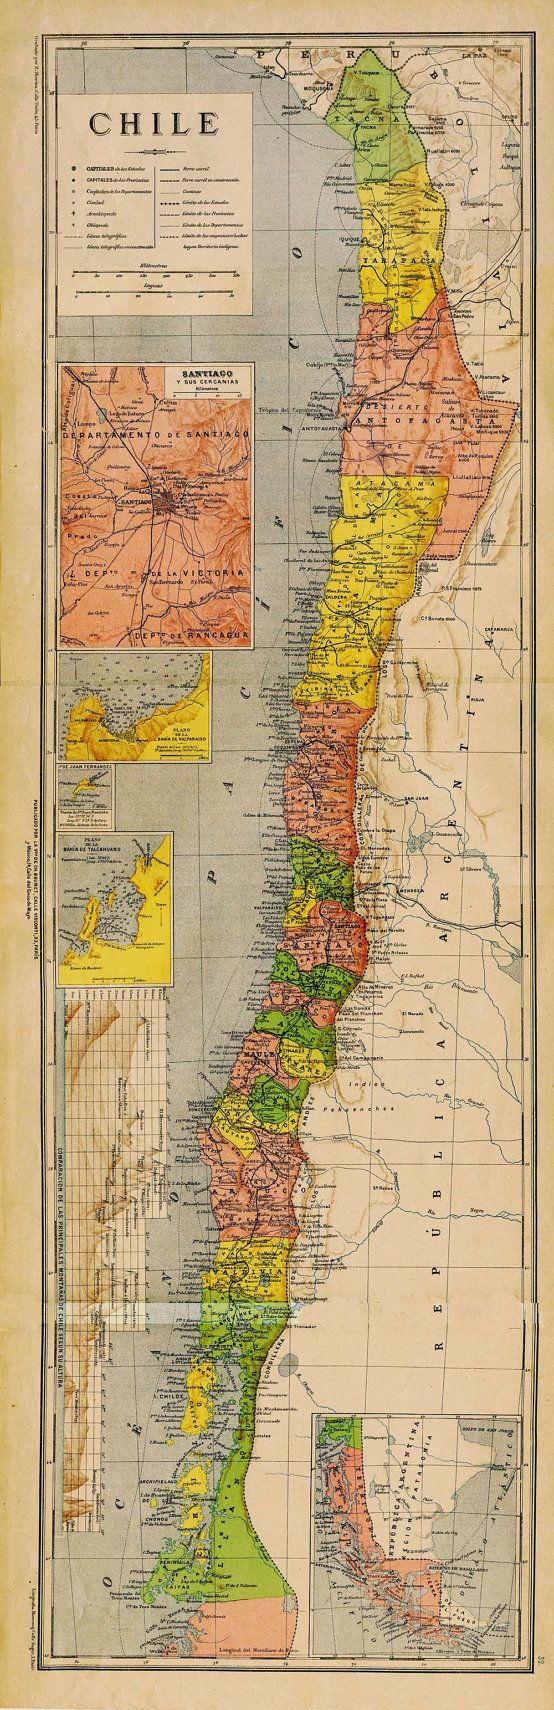 This is a beautiful old map of Chile. Its colors are bright and it would be perfect to hang on a narrow wall. Inset maps of: Santiago and